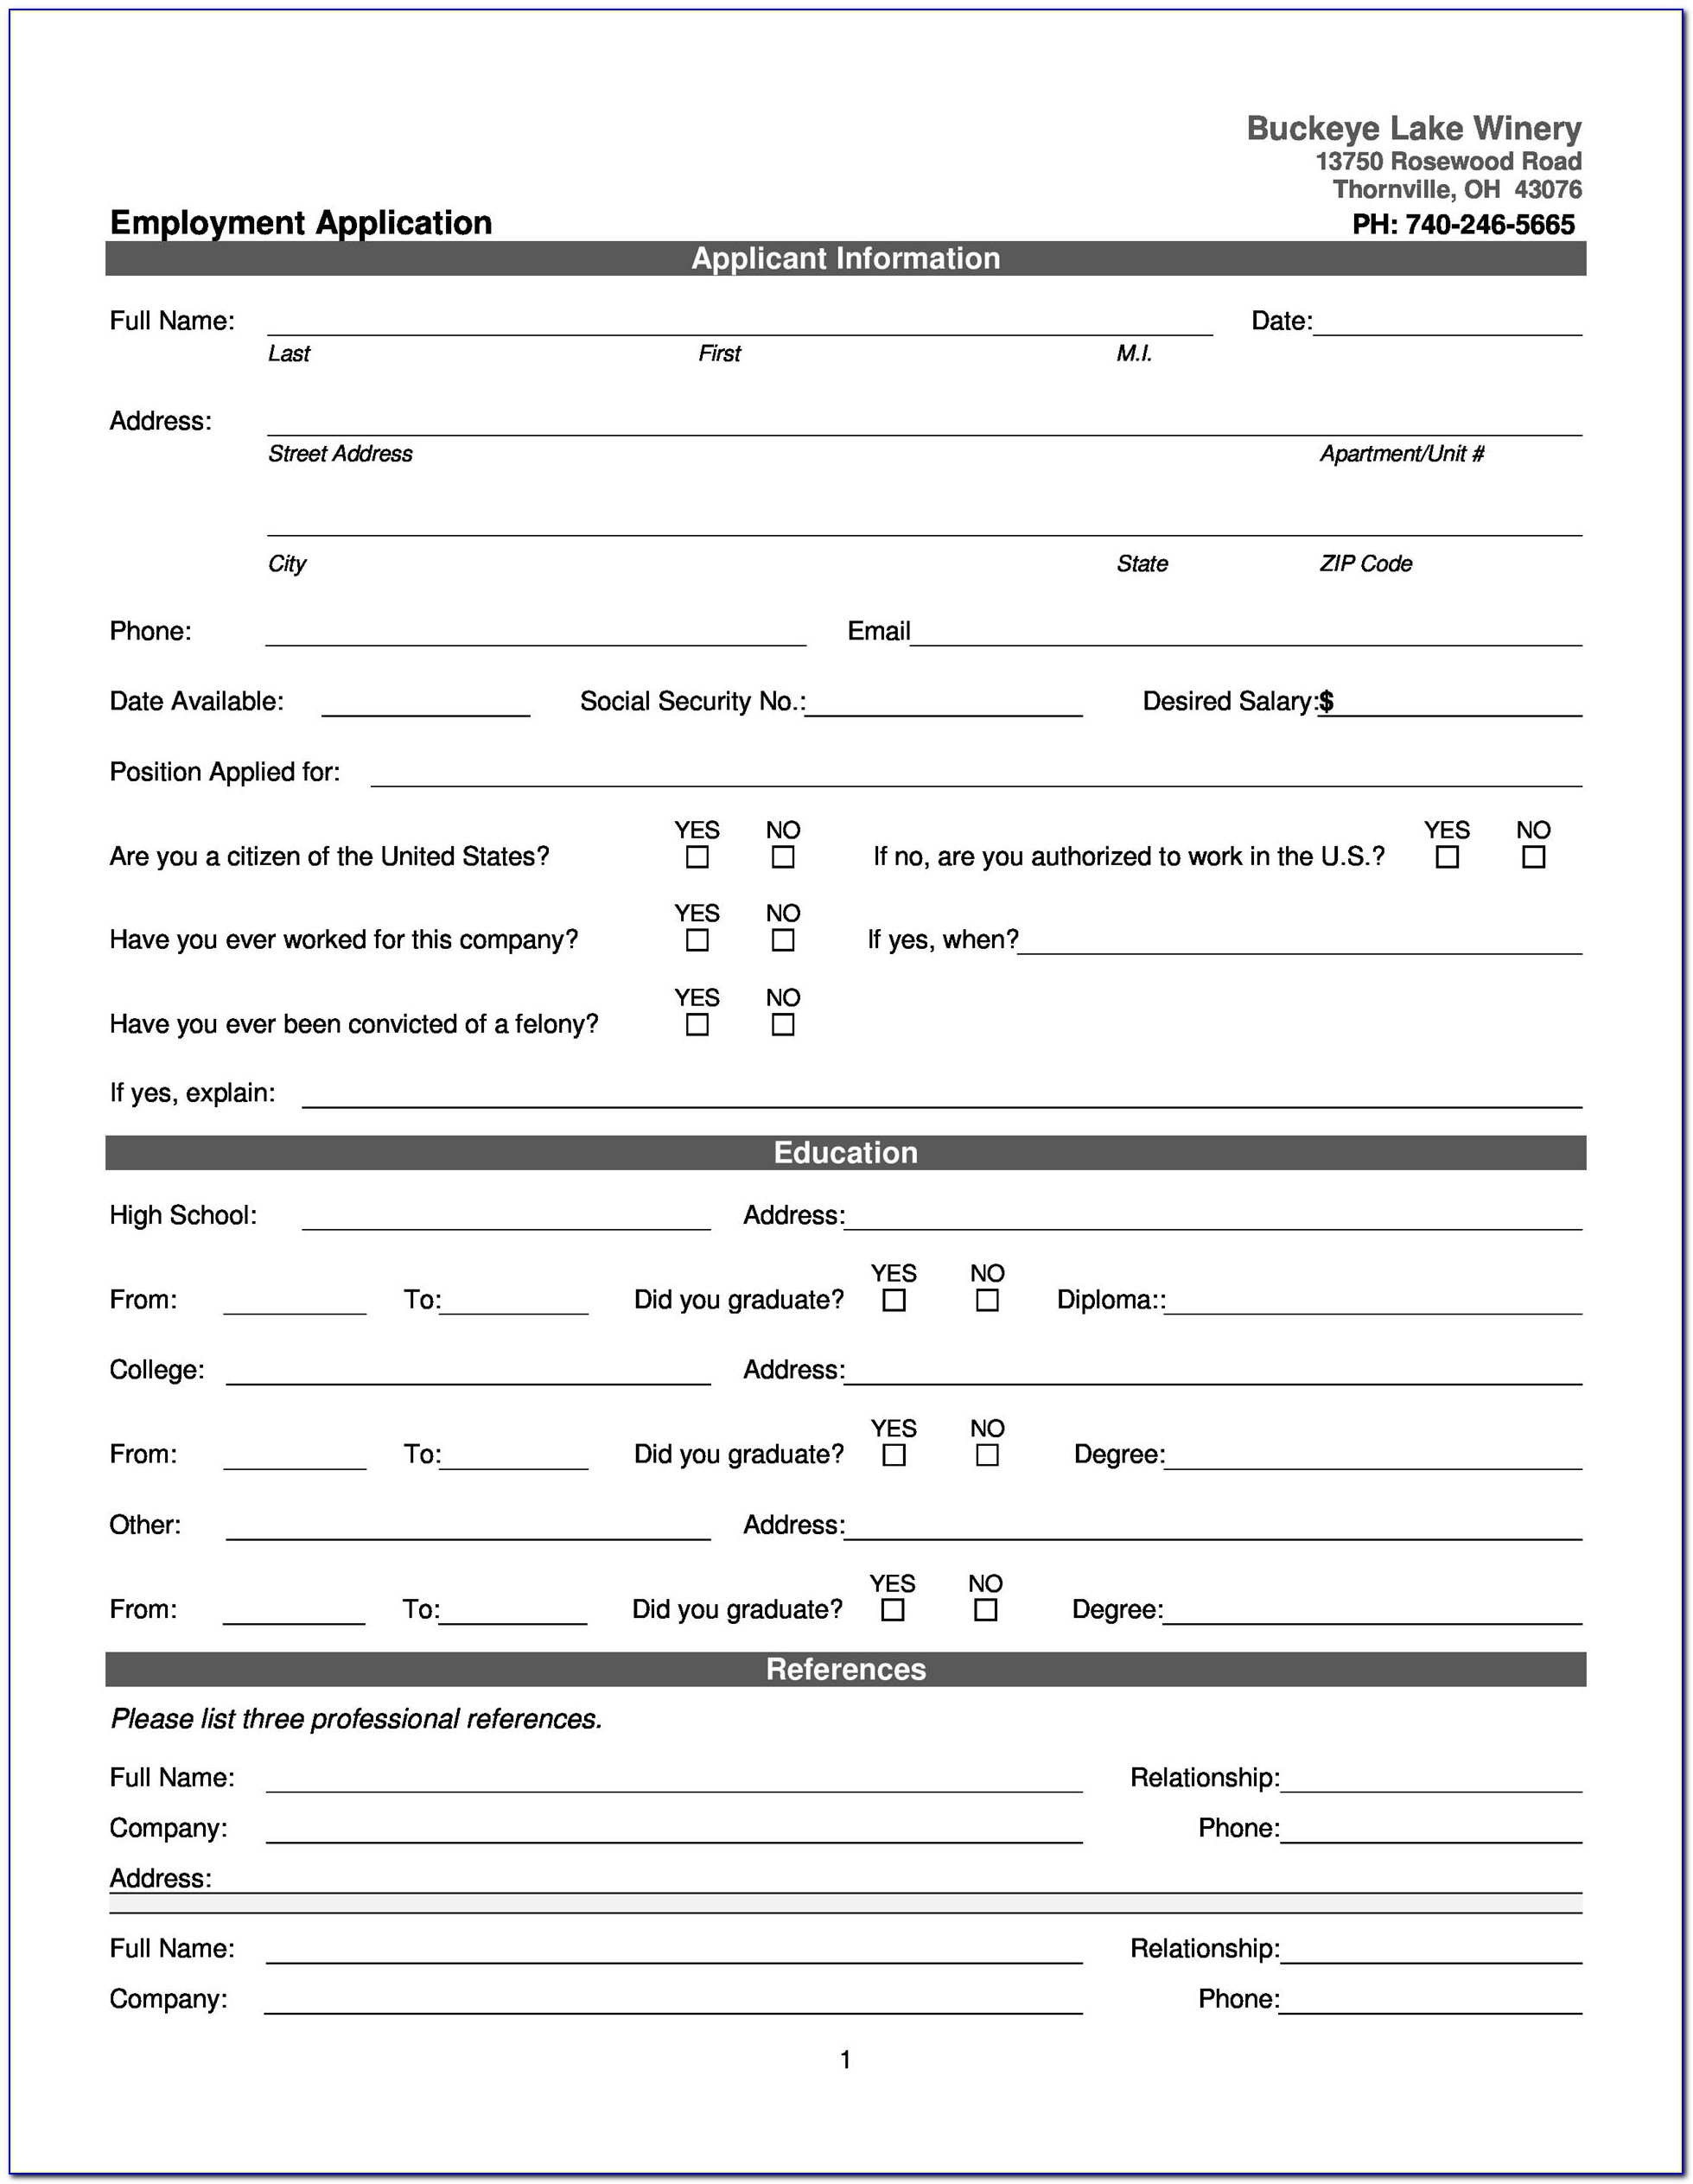 Job Description Form Template Microsoft Word